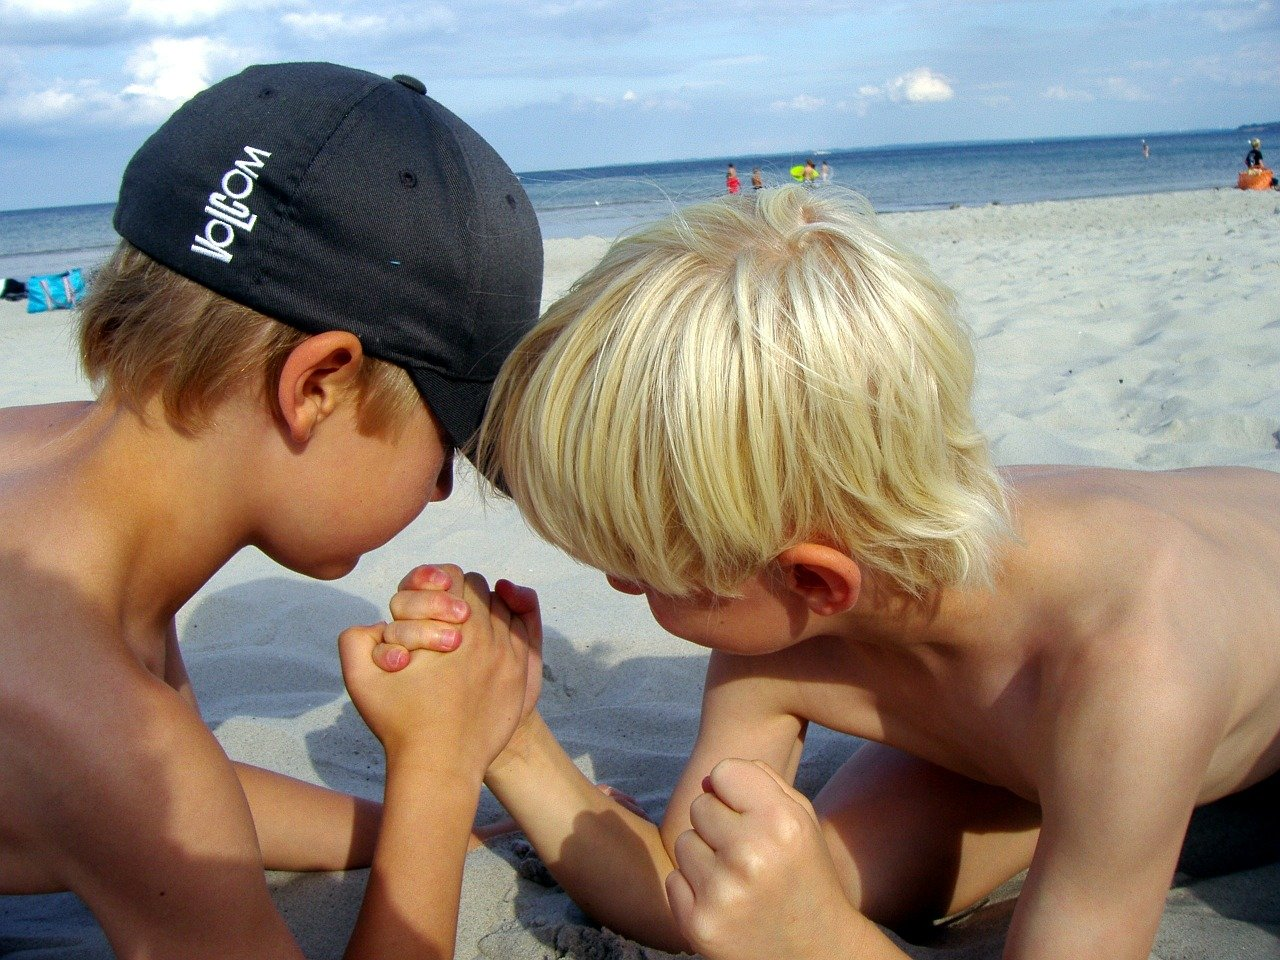 two boys arm wrestling in the sand at the beach, heads close together